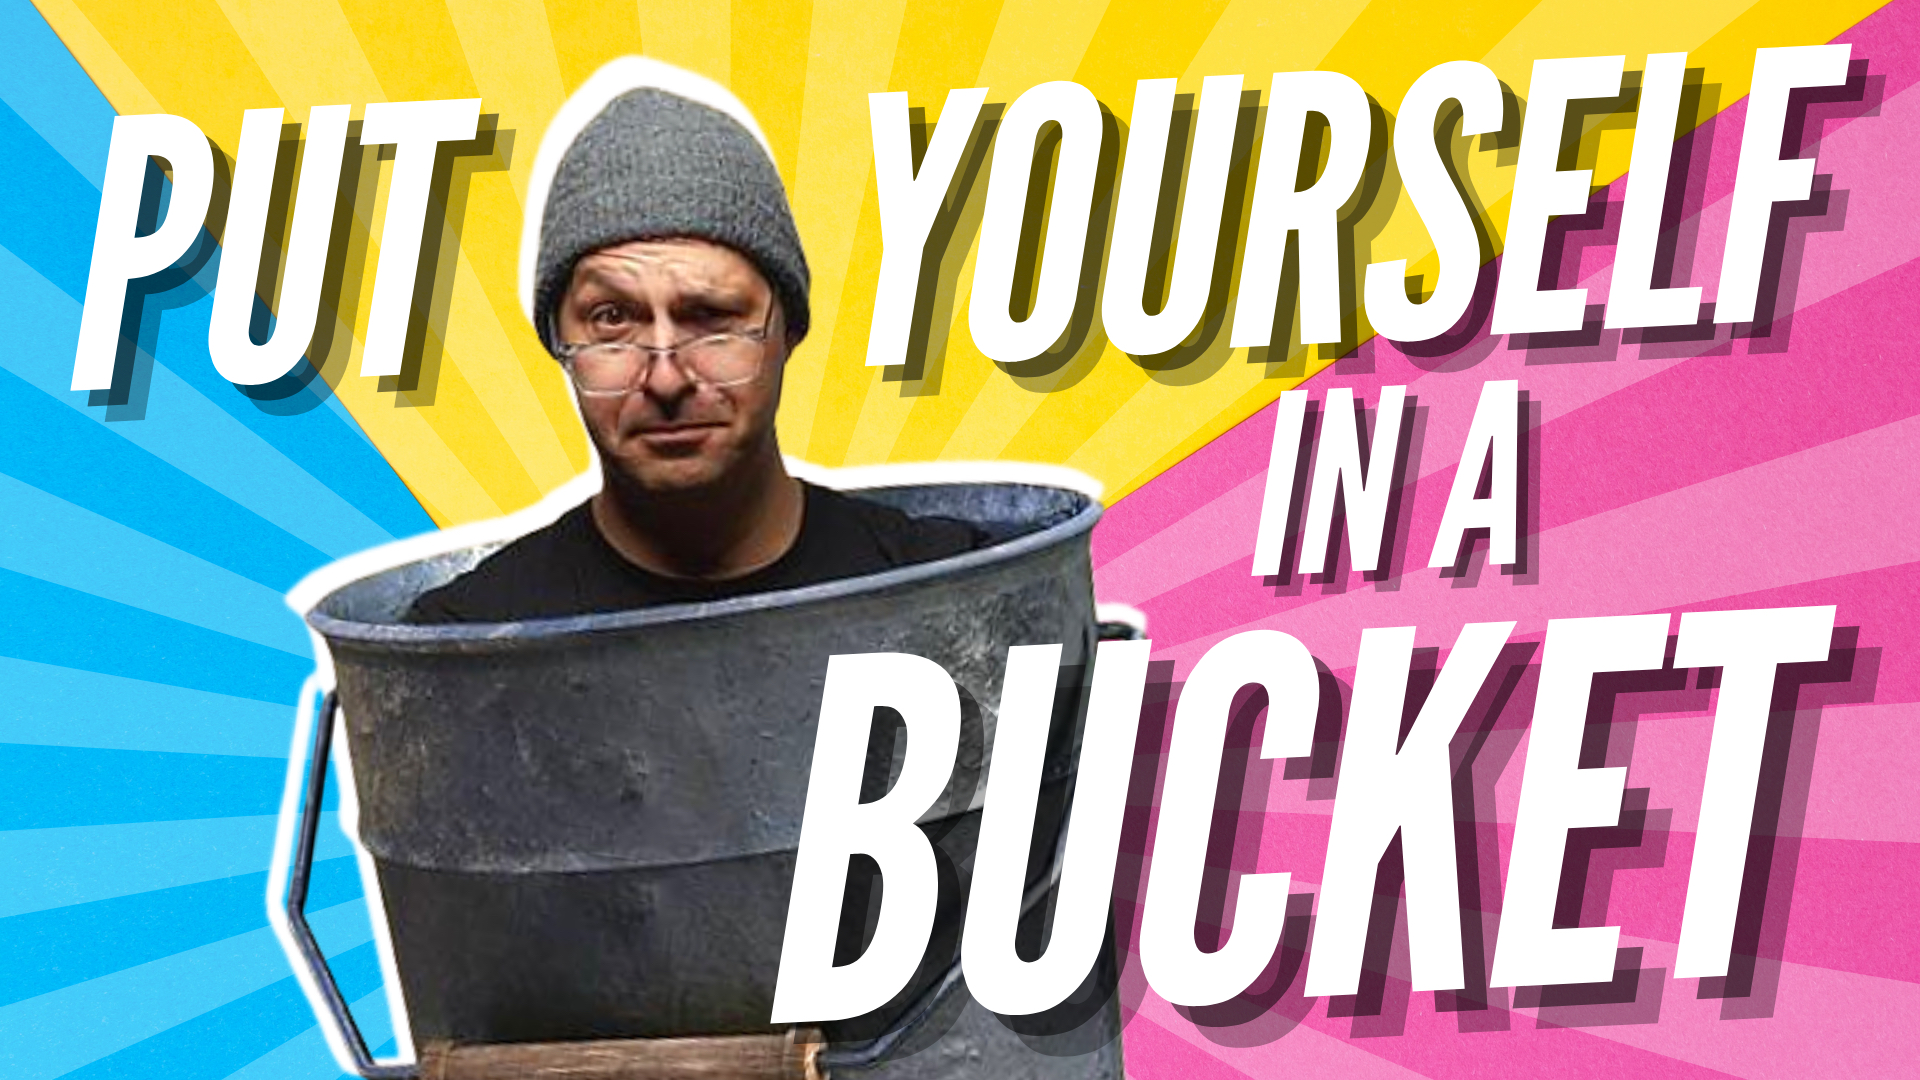 Put Yourself in a Bucket